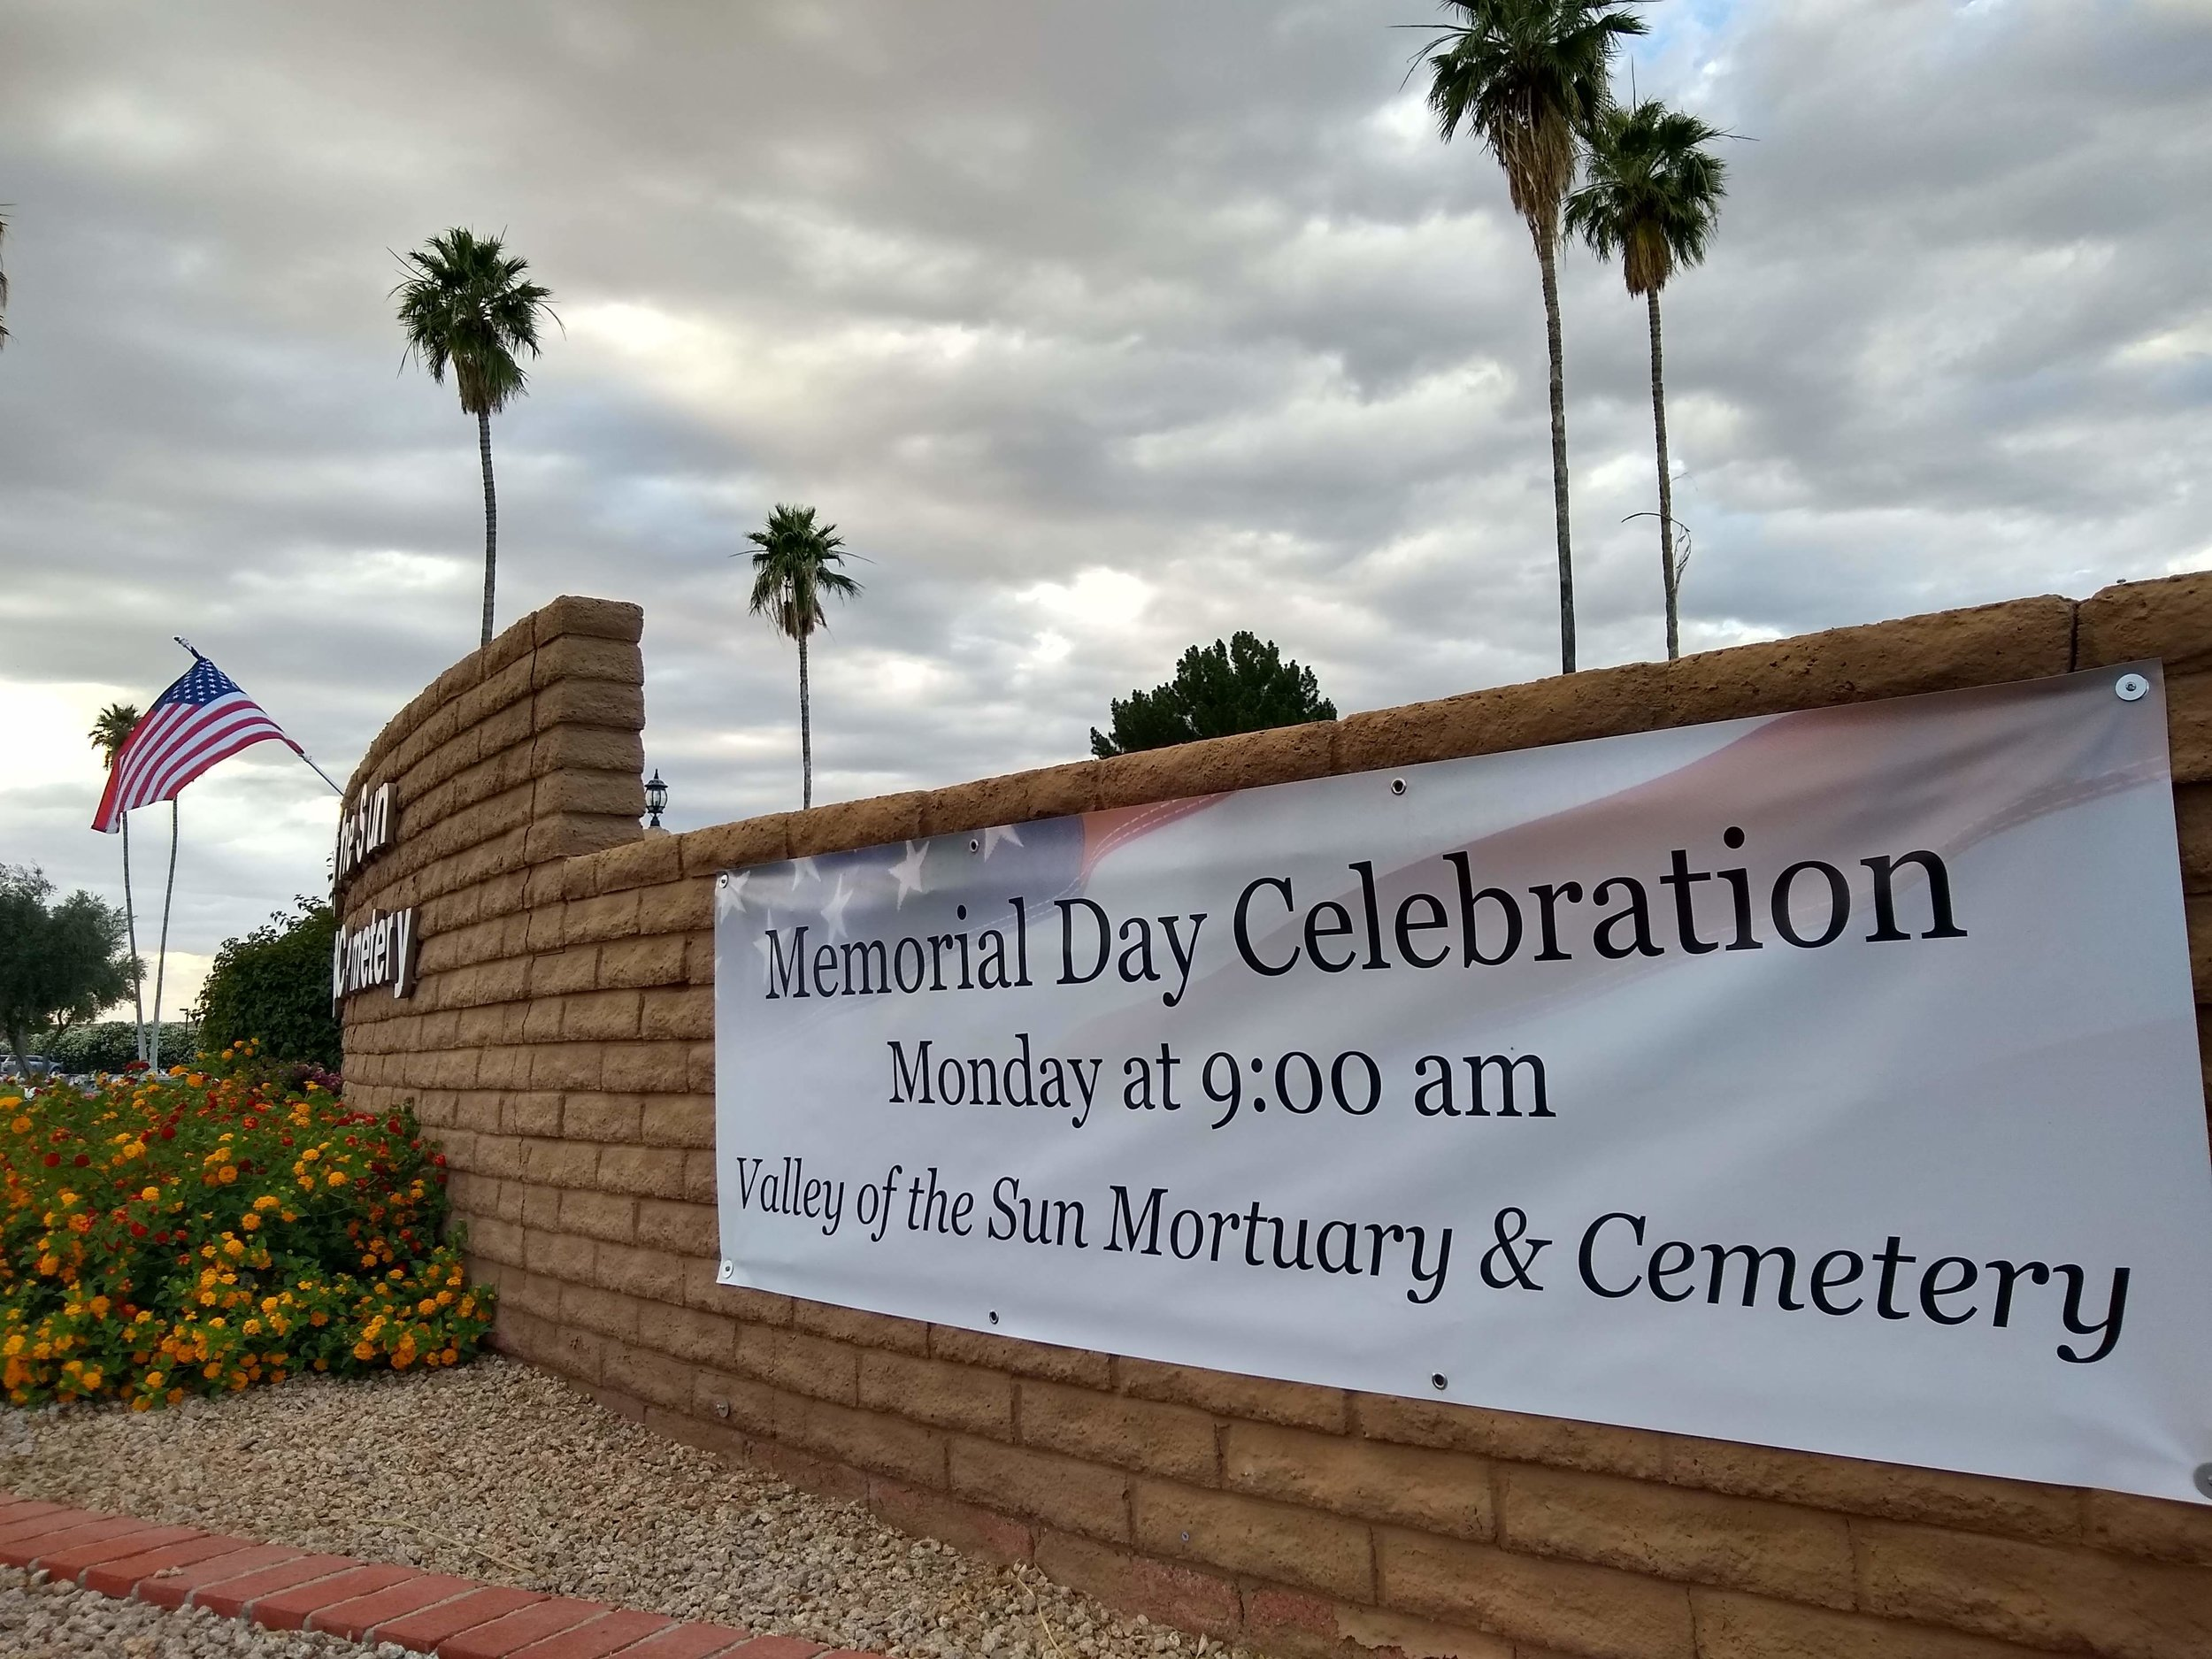 valley of the sun mortuary & cemetery.jpg